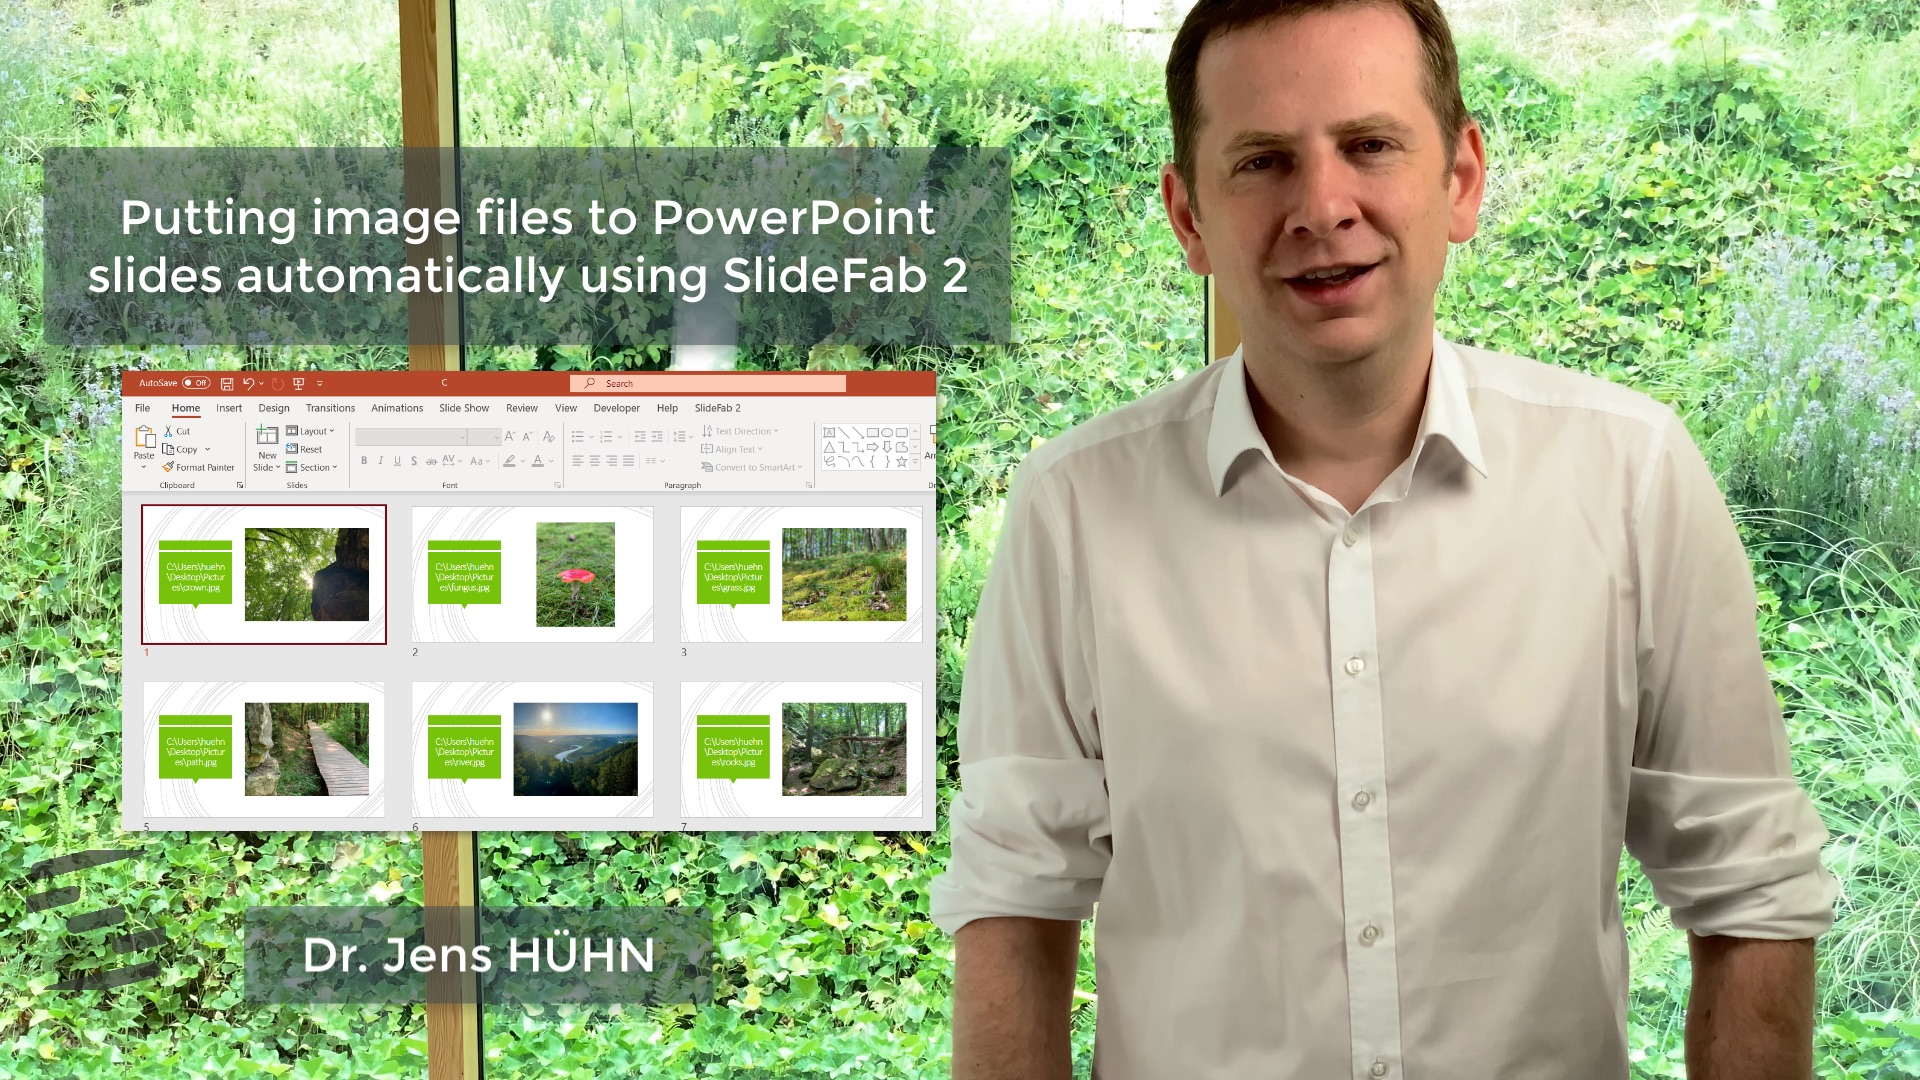 This is still picture from the video explaining how to put image files onto PowerPoint slides with SlideFab 2 automatically